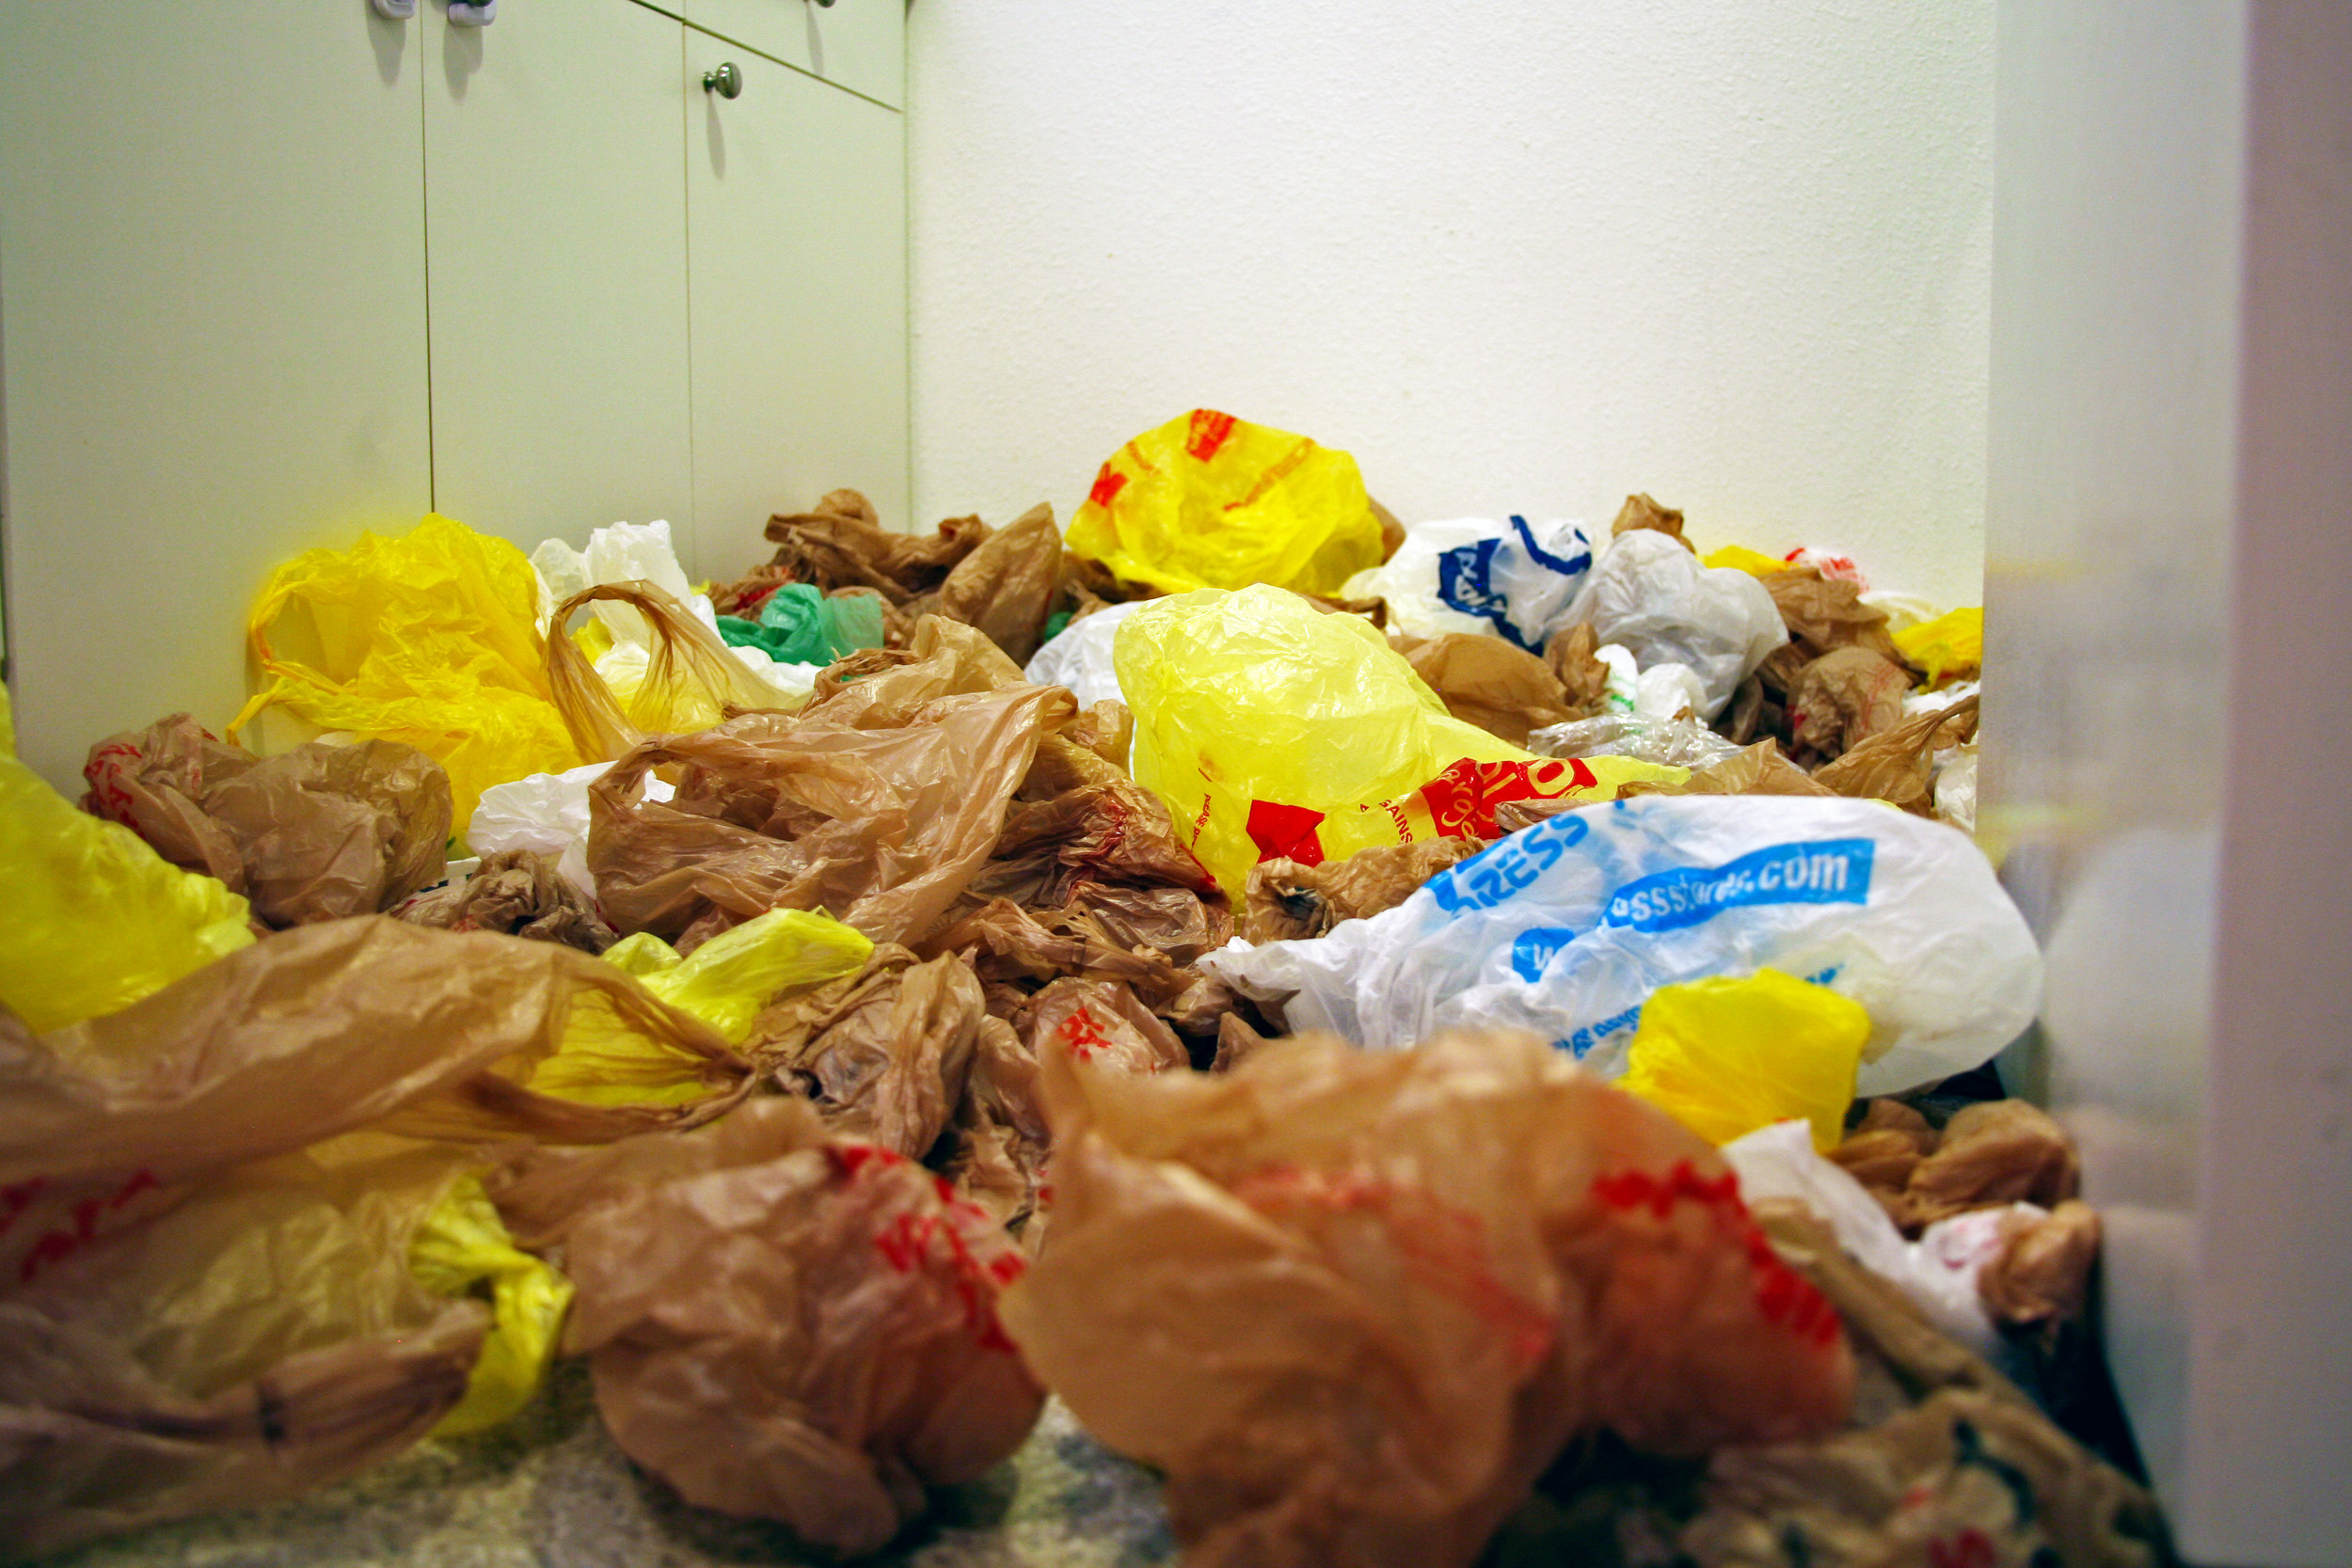 How many plastic bags did your family acquire last year?